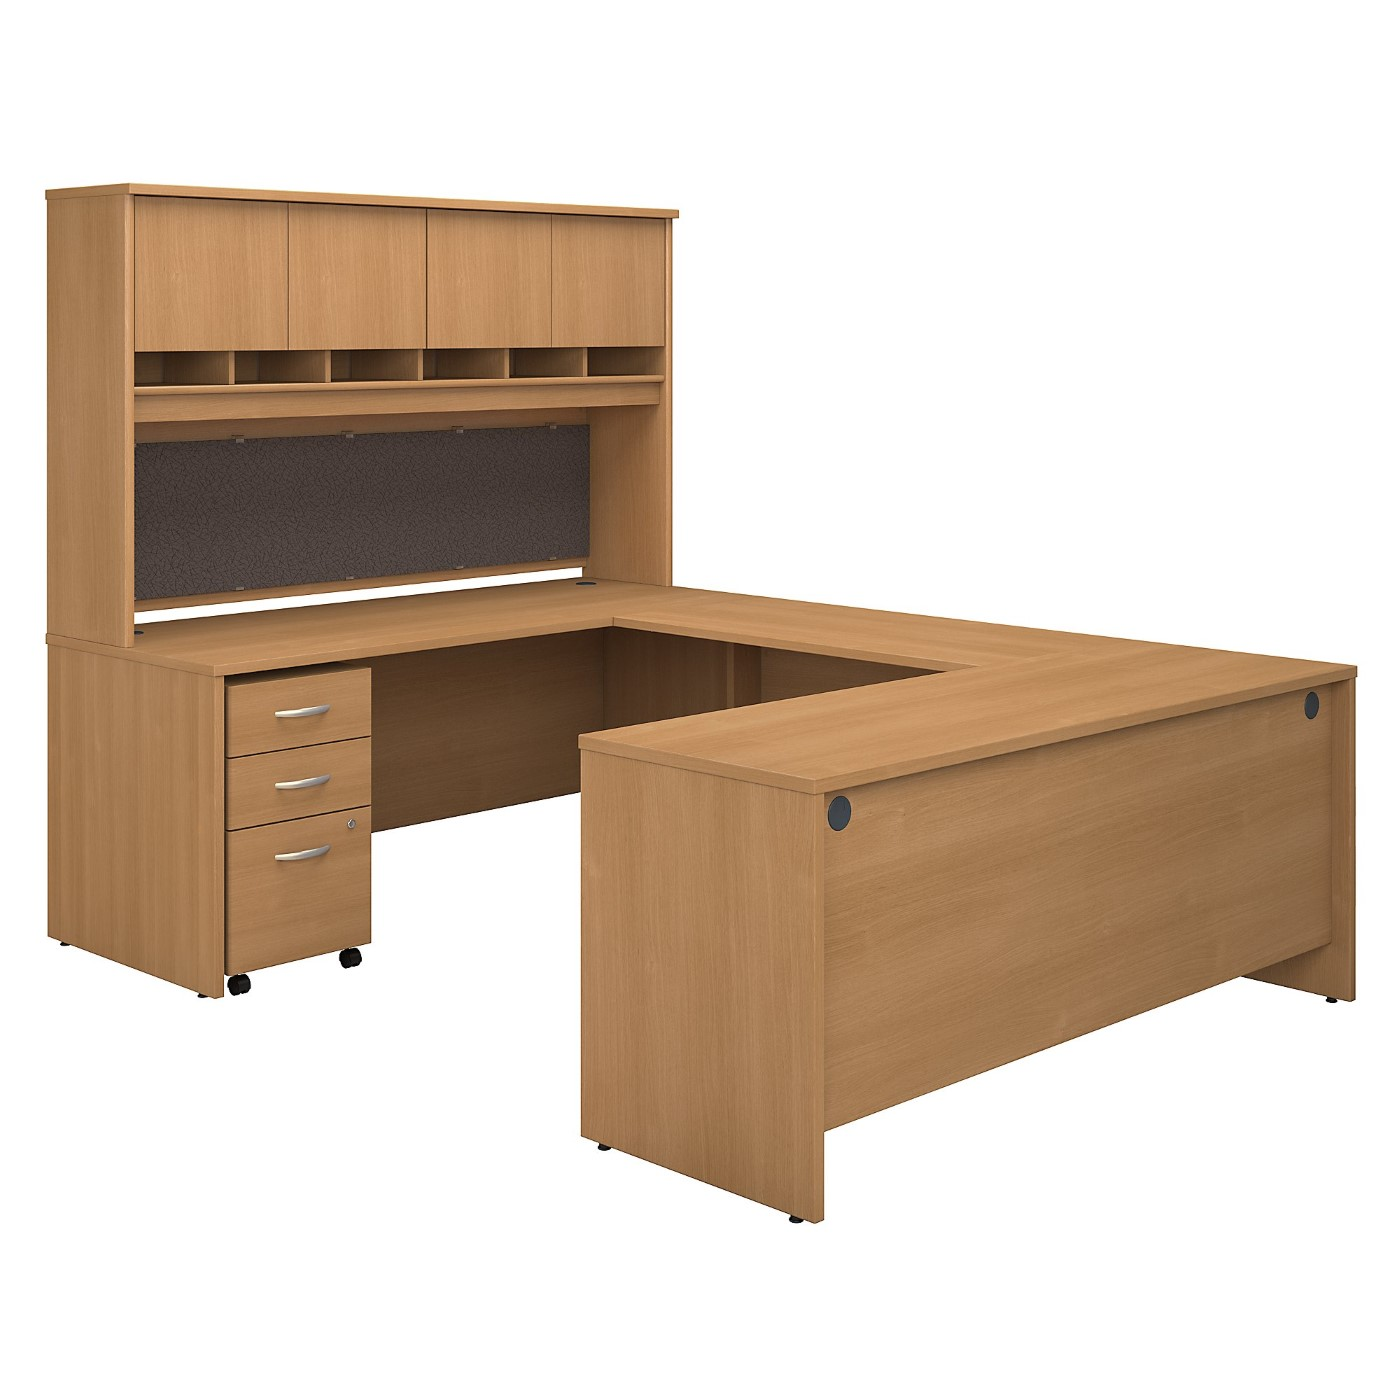 BUSH BUSINESS FURNITURE SERIES C 72W U SHAPED DESK WITH HUTCH AND STORAGE. FREE SHIPPING SALE DEDUCT 10% MORE ENTER '10percent' IN COUPON CODE BOX WHILE CHECKING OUT.